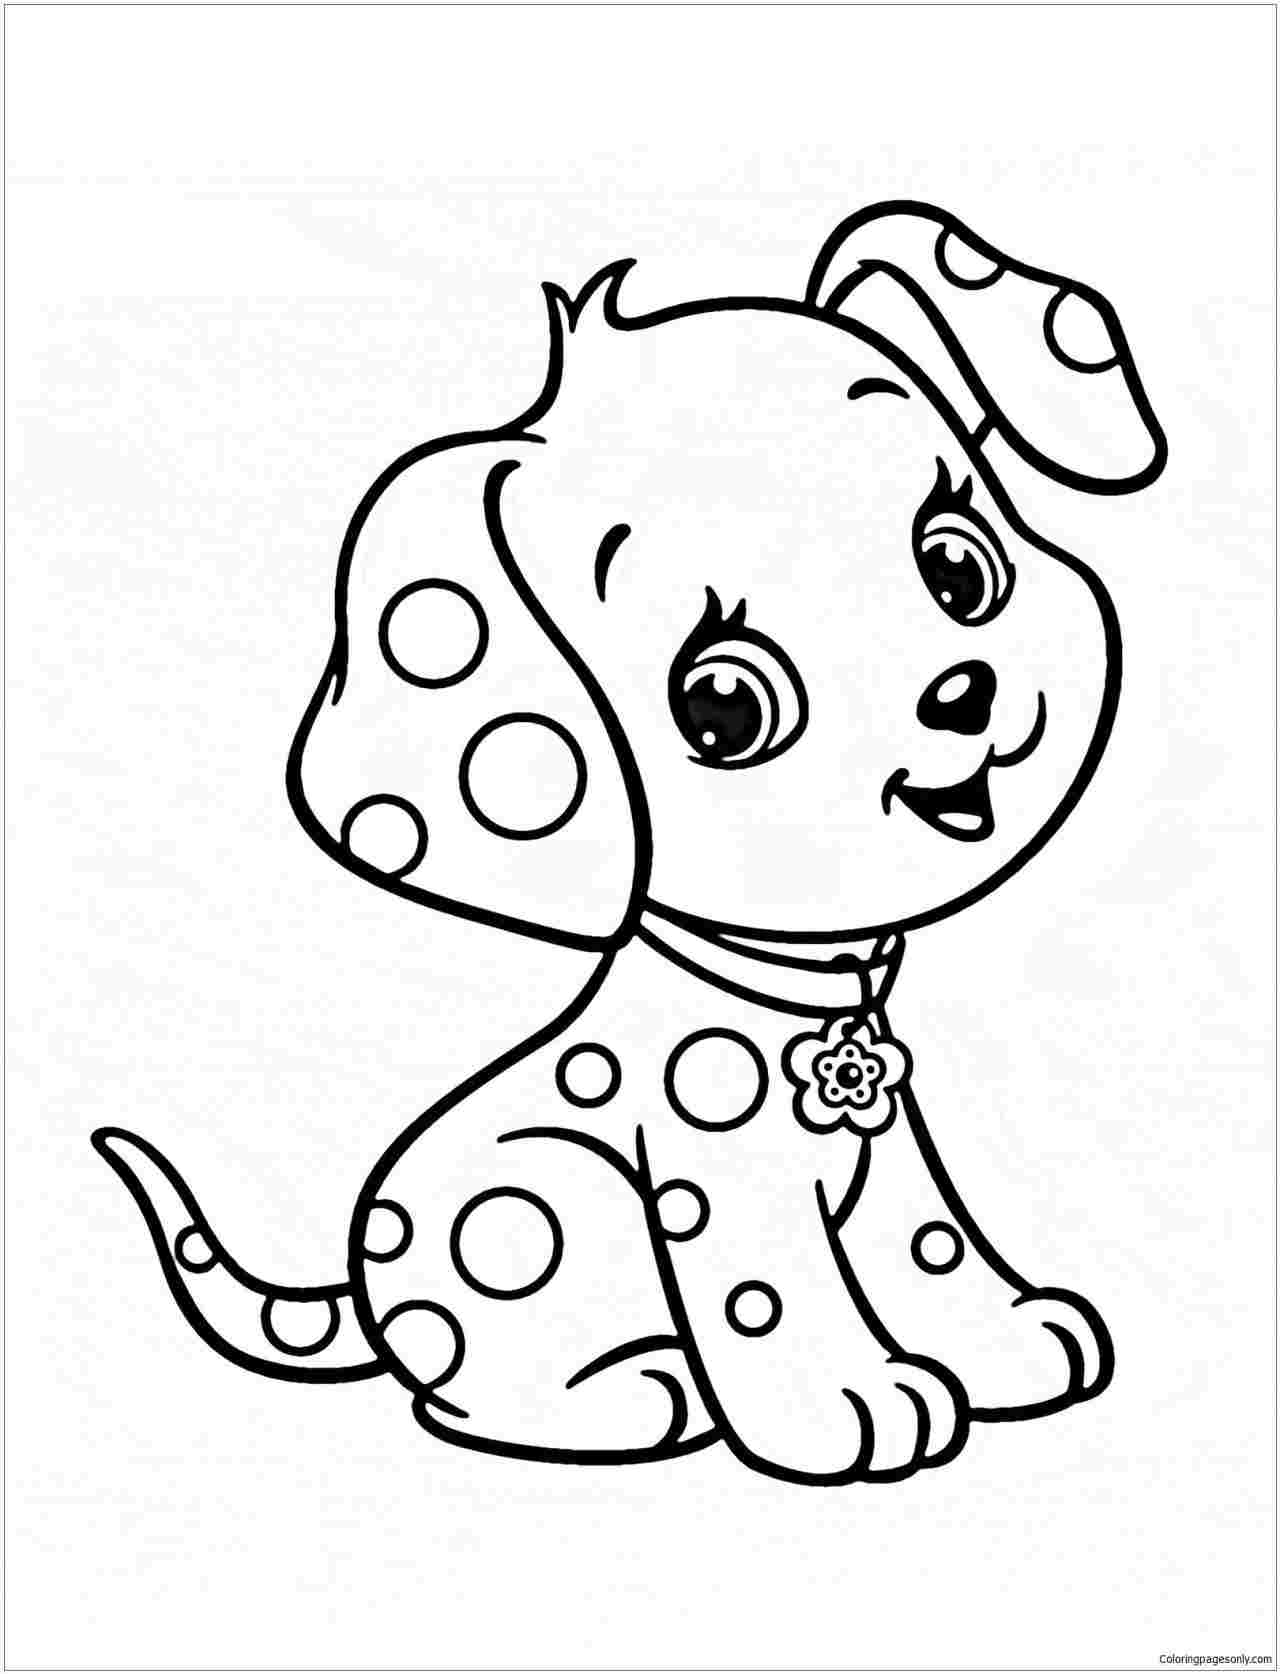 Little Puppy Coloring Pages How Cute Puppy Drawings For Kids To Draw A Drawing